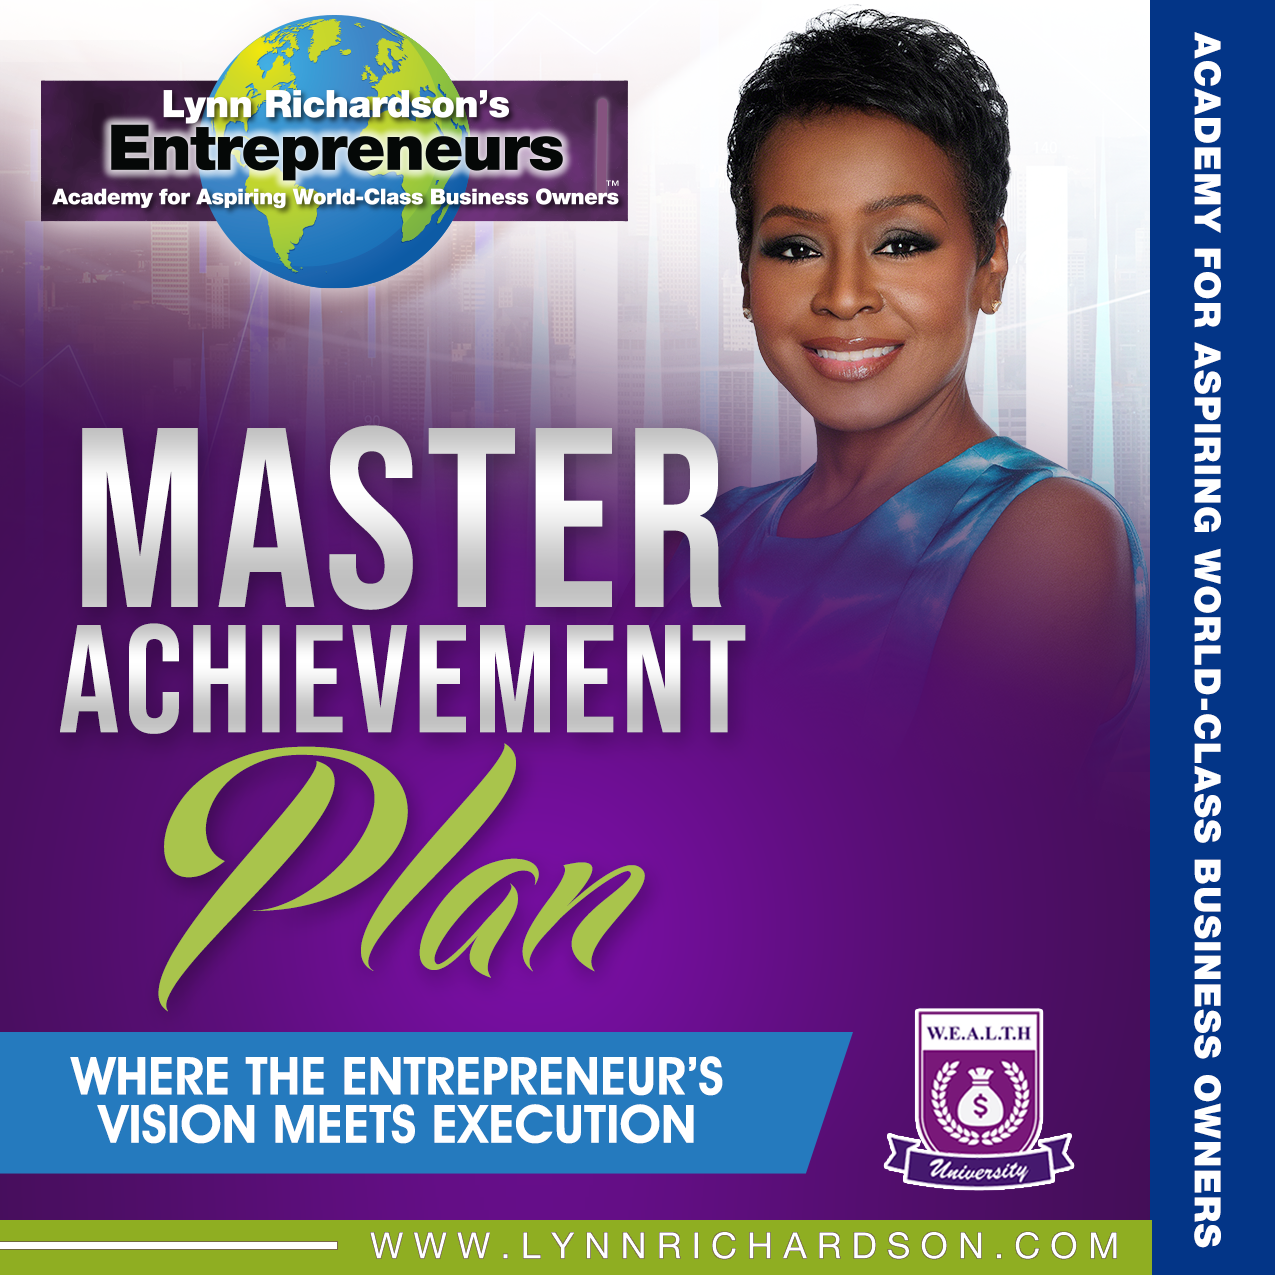 The Master Achievement Plan: Where the Entrepreneur's Vision Meets Execution Online Class